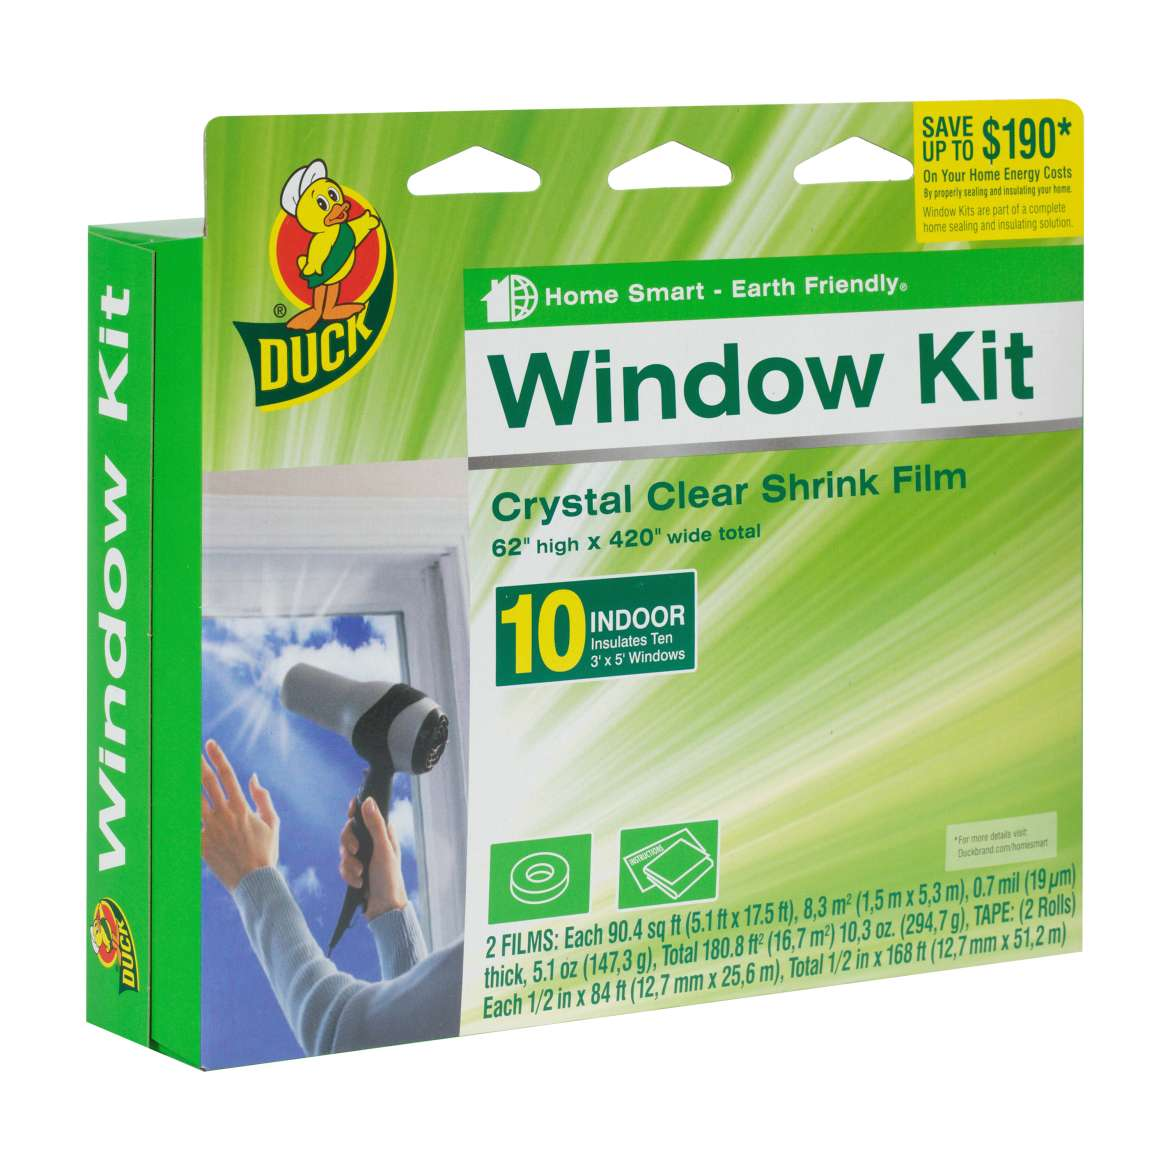 Duck Shrink Film Indoor Window Kit